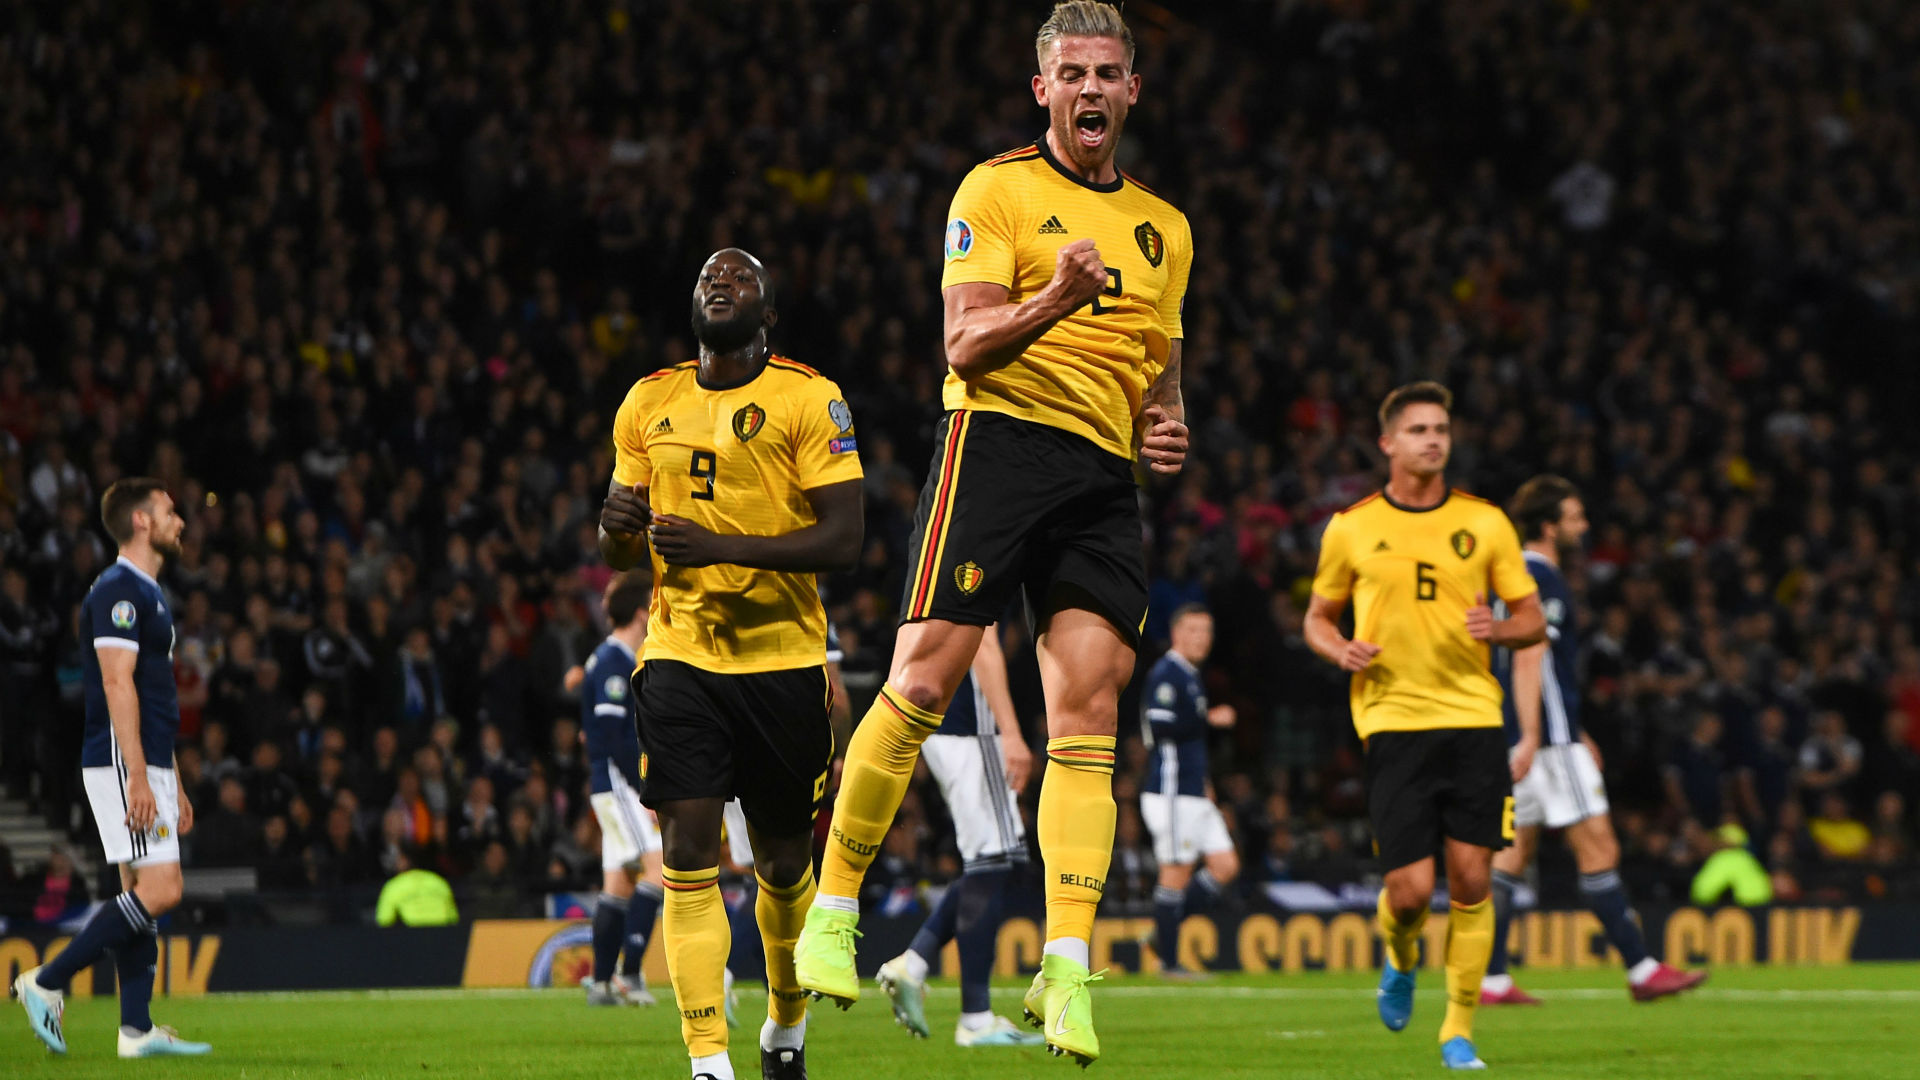 Scotland 0-4 Belgium: De Bruyne shines on miserable night for Scots